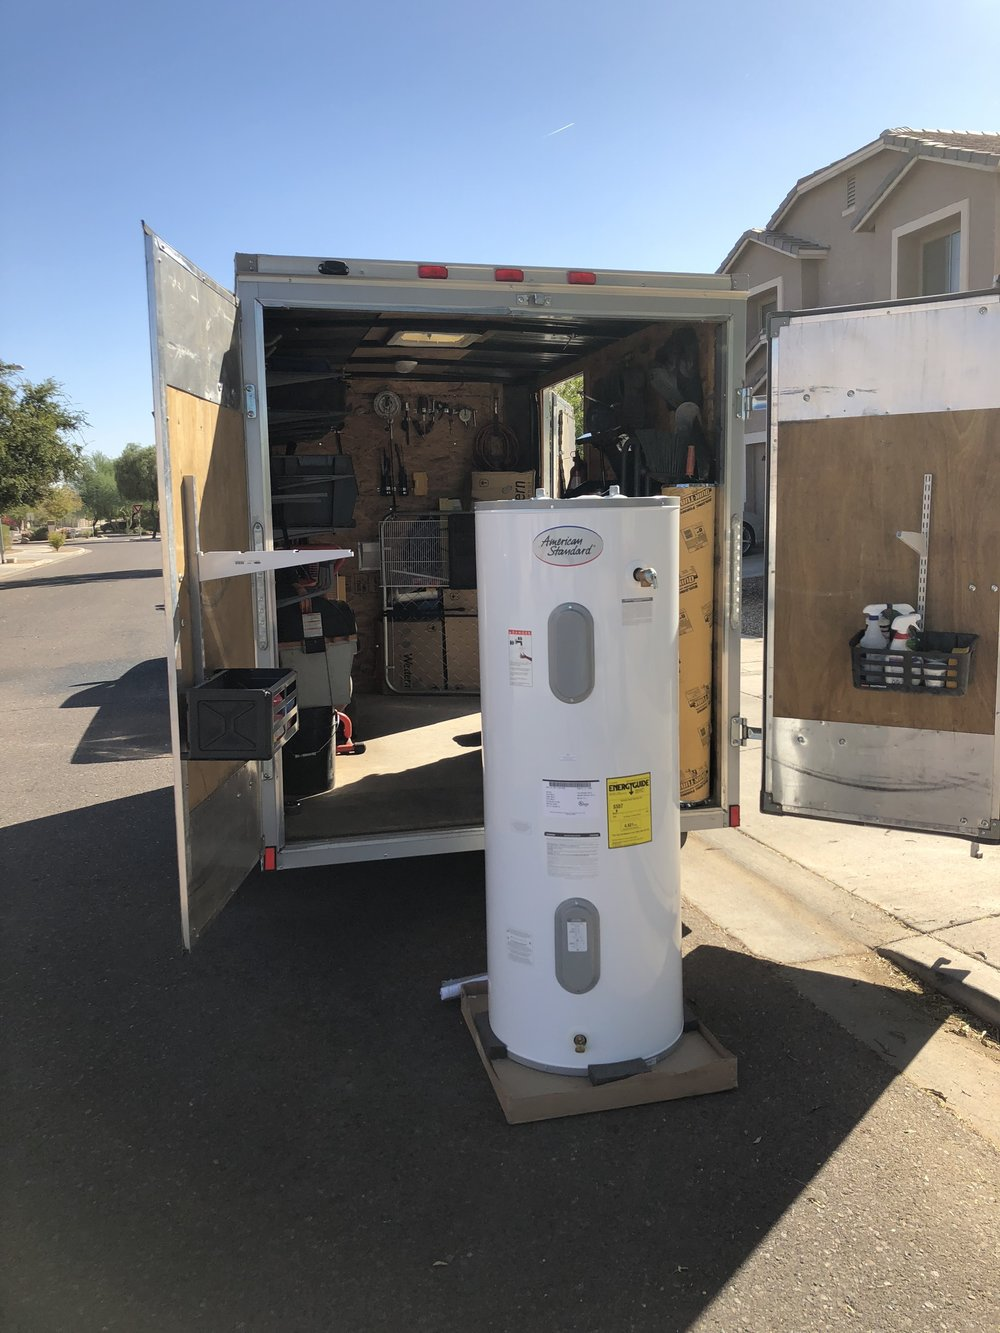 New water heater transported in our fully stocked trucks, ready for installation